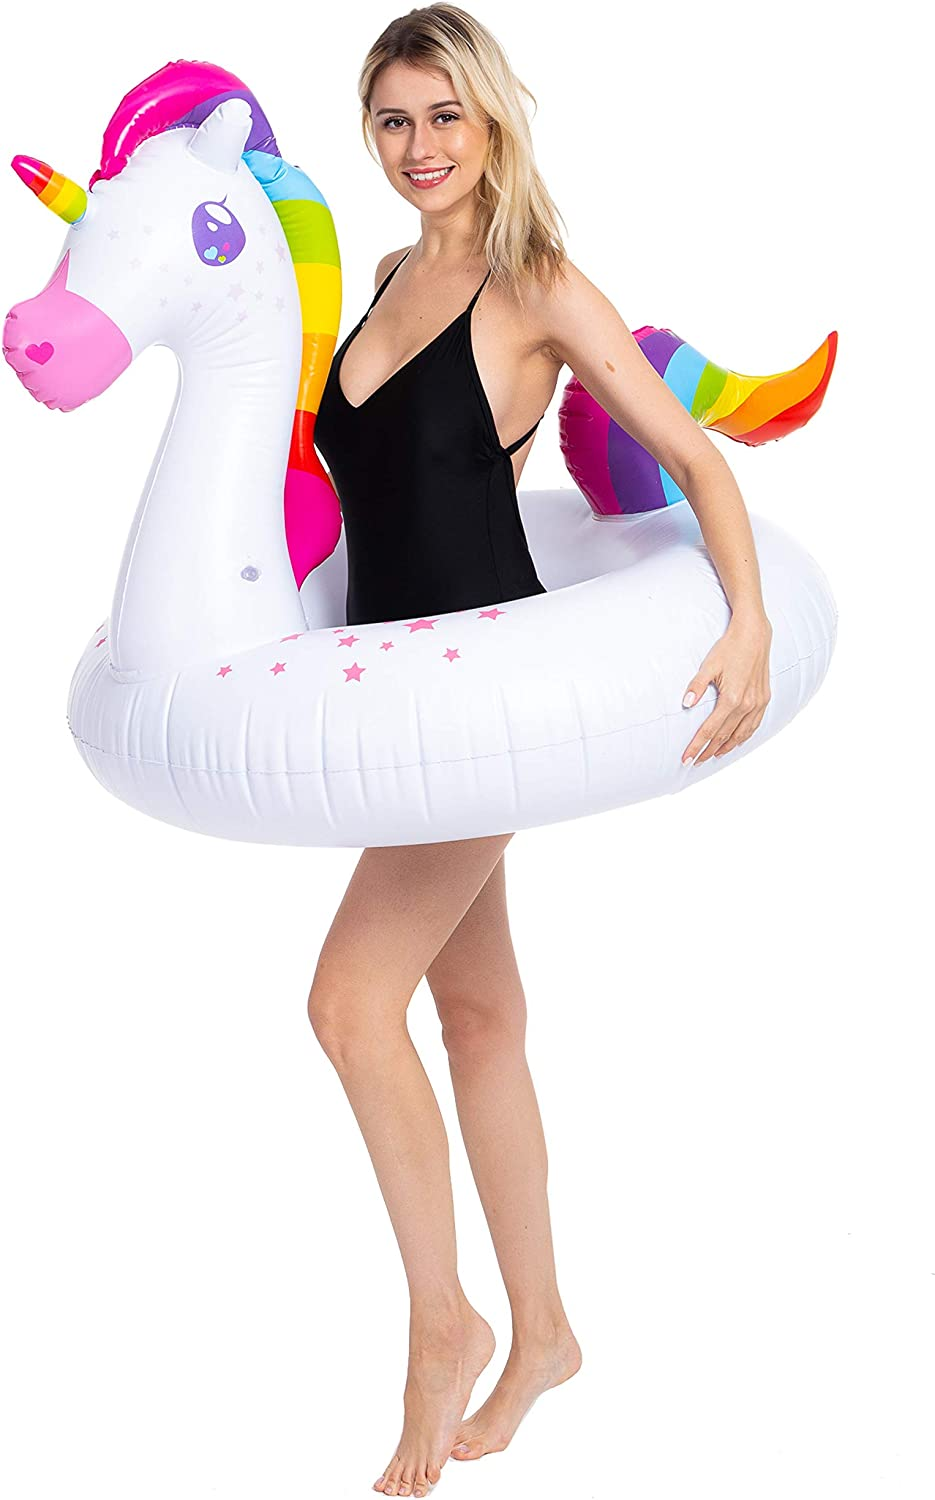 Amazon.com: JOYIN Flotador hinchable de flamenco y unicornio ...